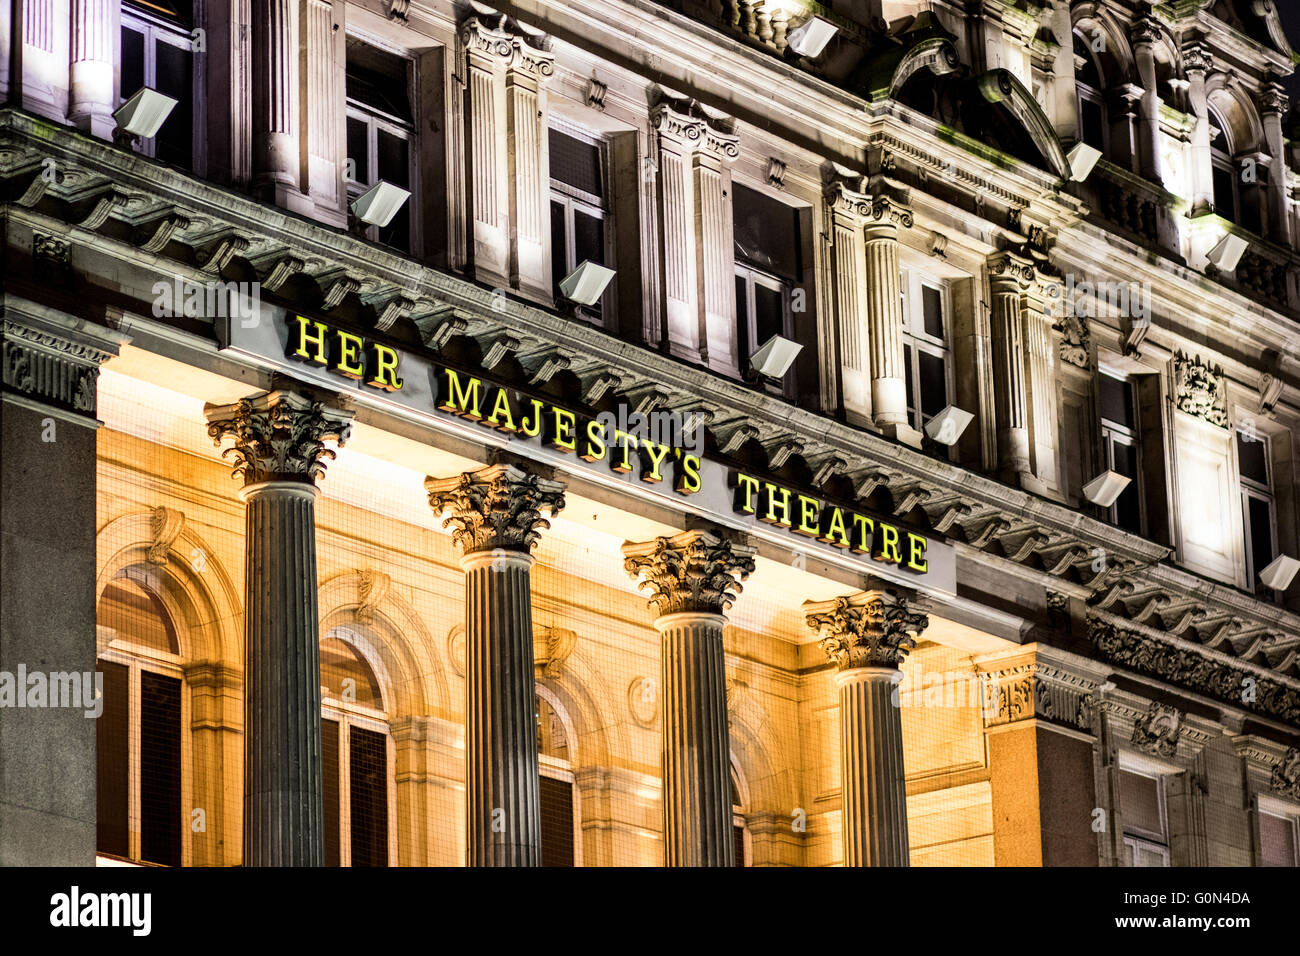 Her Majesty's Theatre Londres signe externe GV Photo Stock